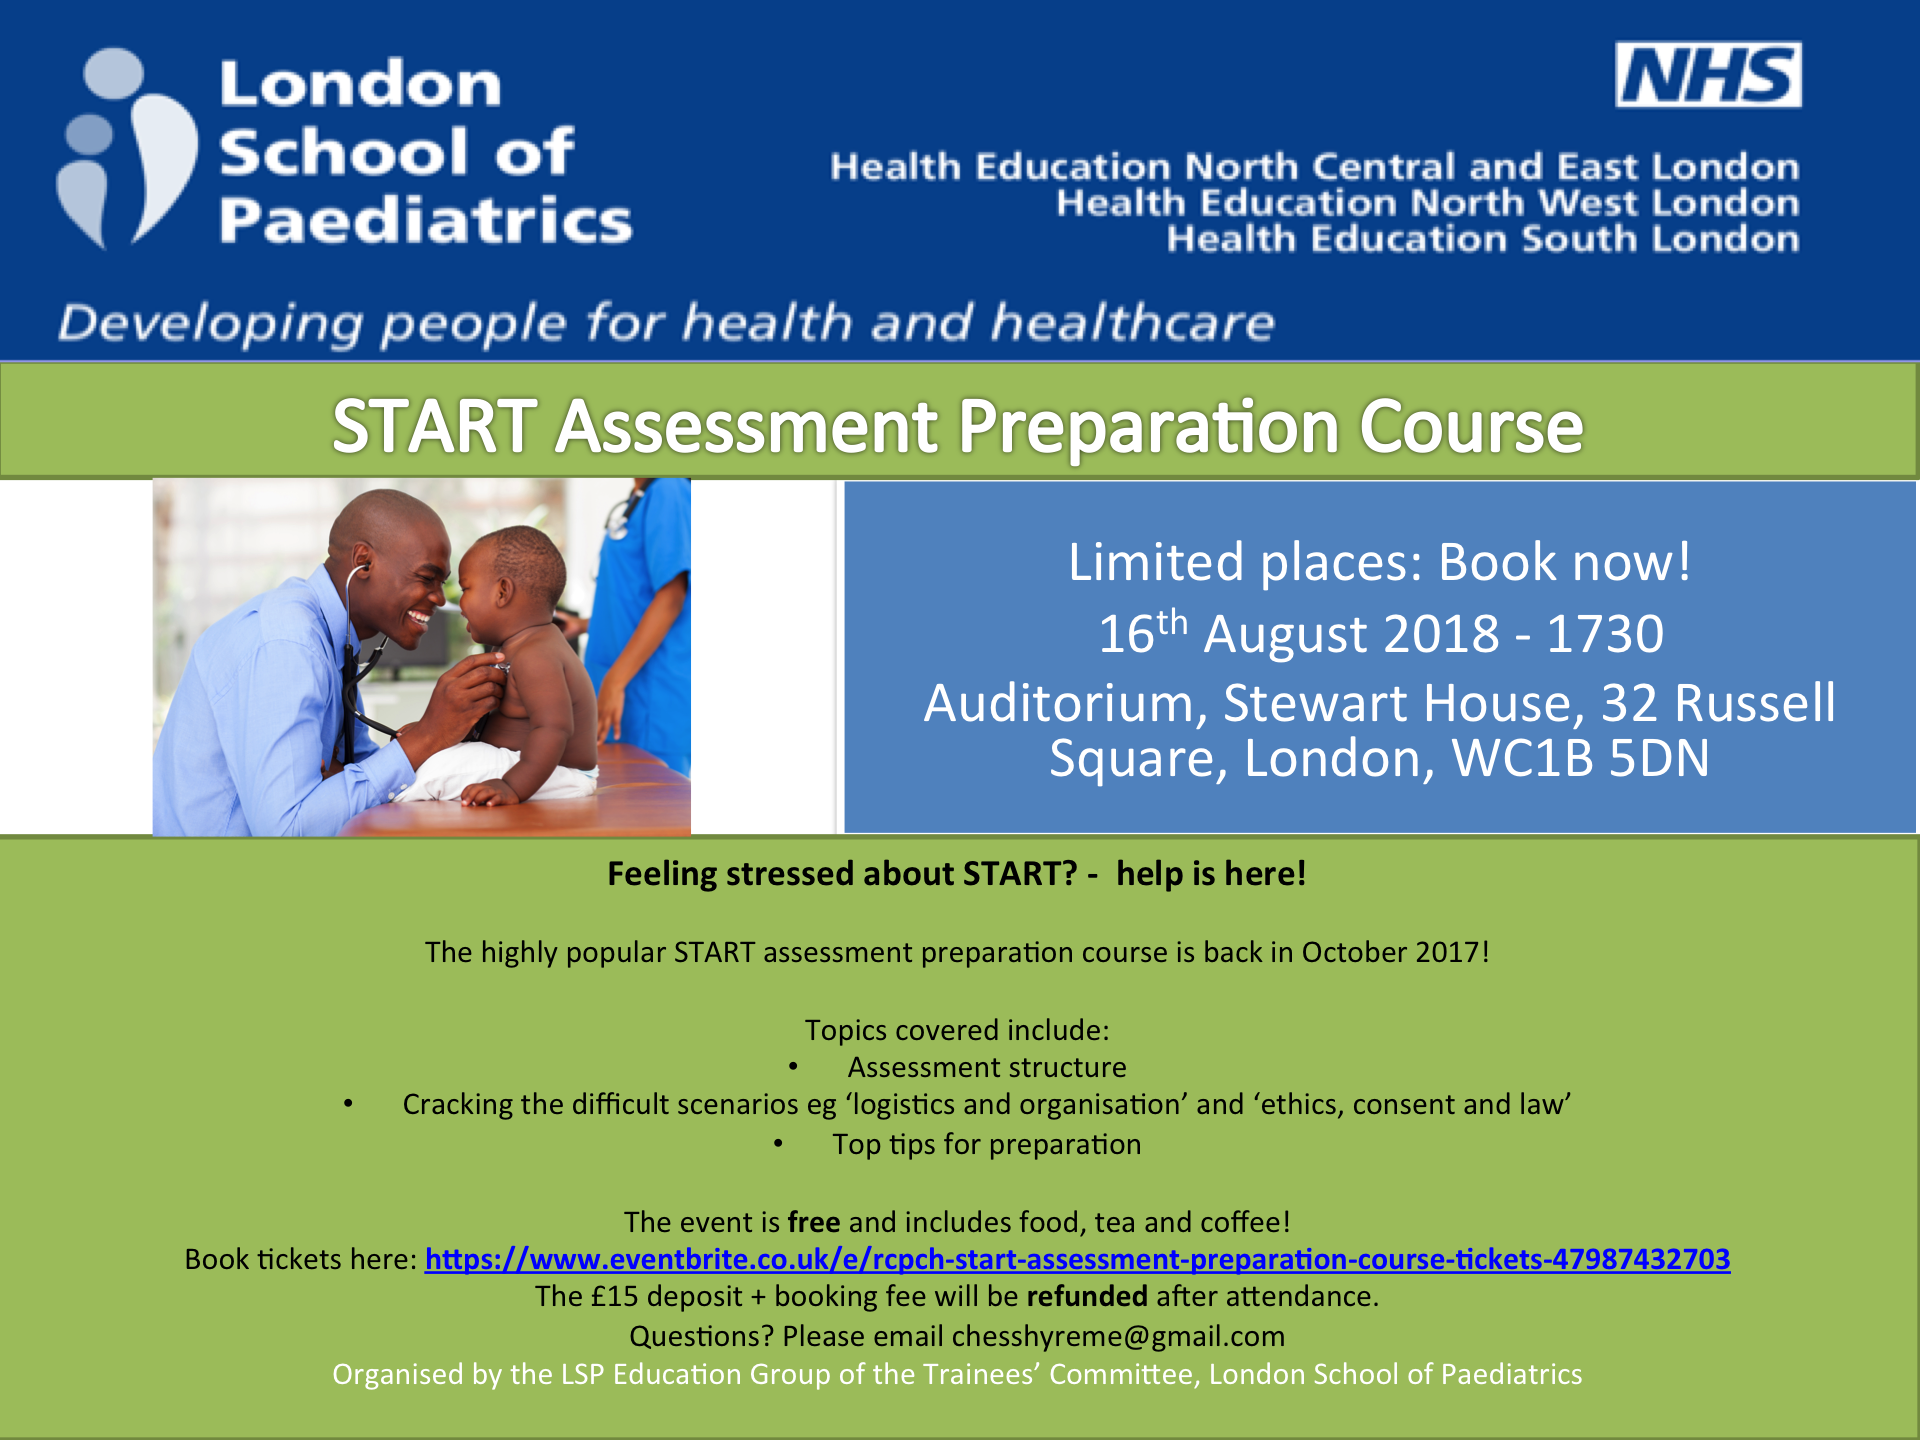 RCPCH START Assessment Preparation Course – 16th August 2018